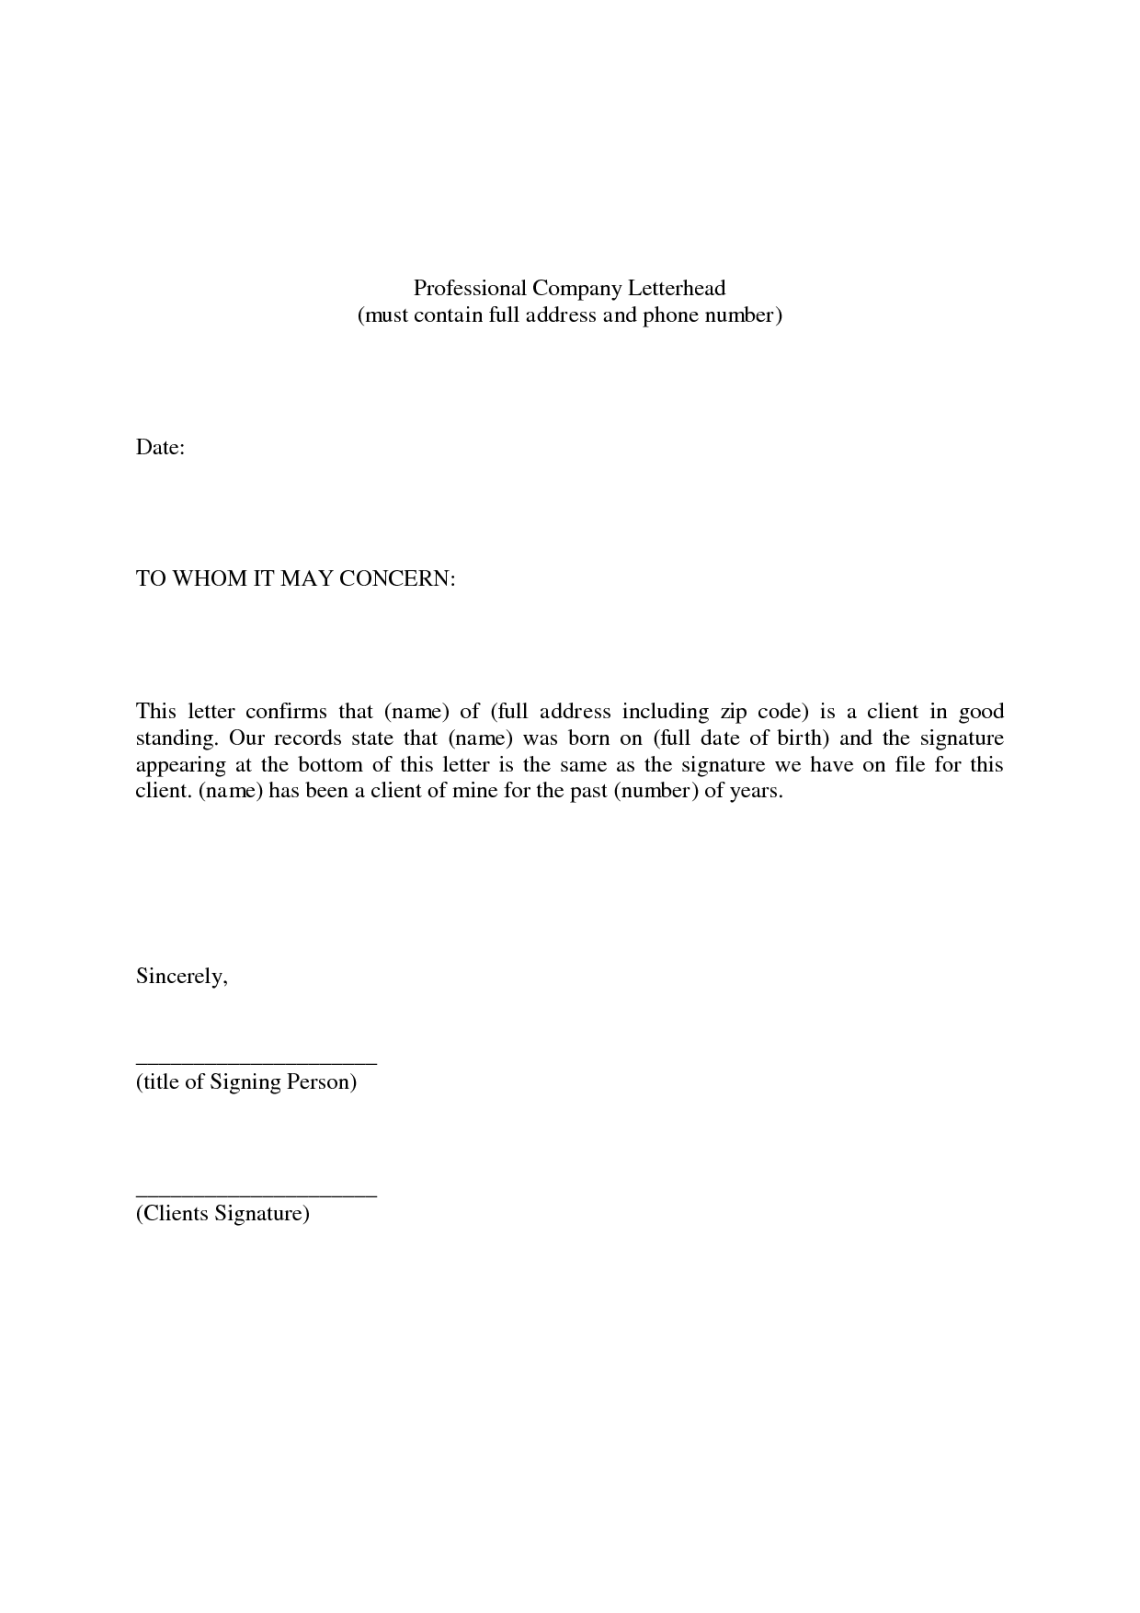 Cover Letter To Whom It May Concern Teaching Cover Letterteacher Cover Letters What Is A Cover